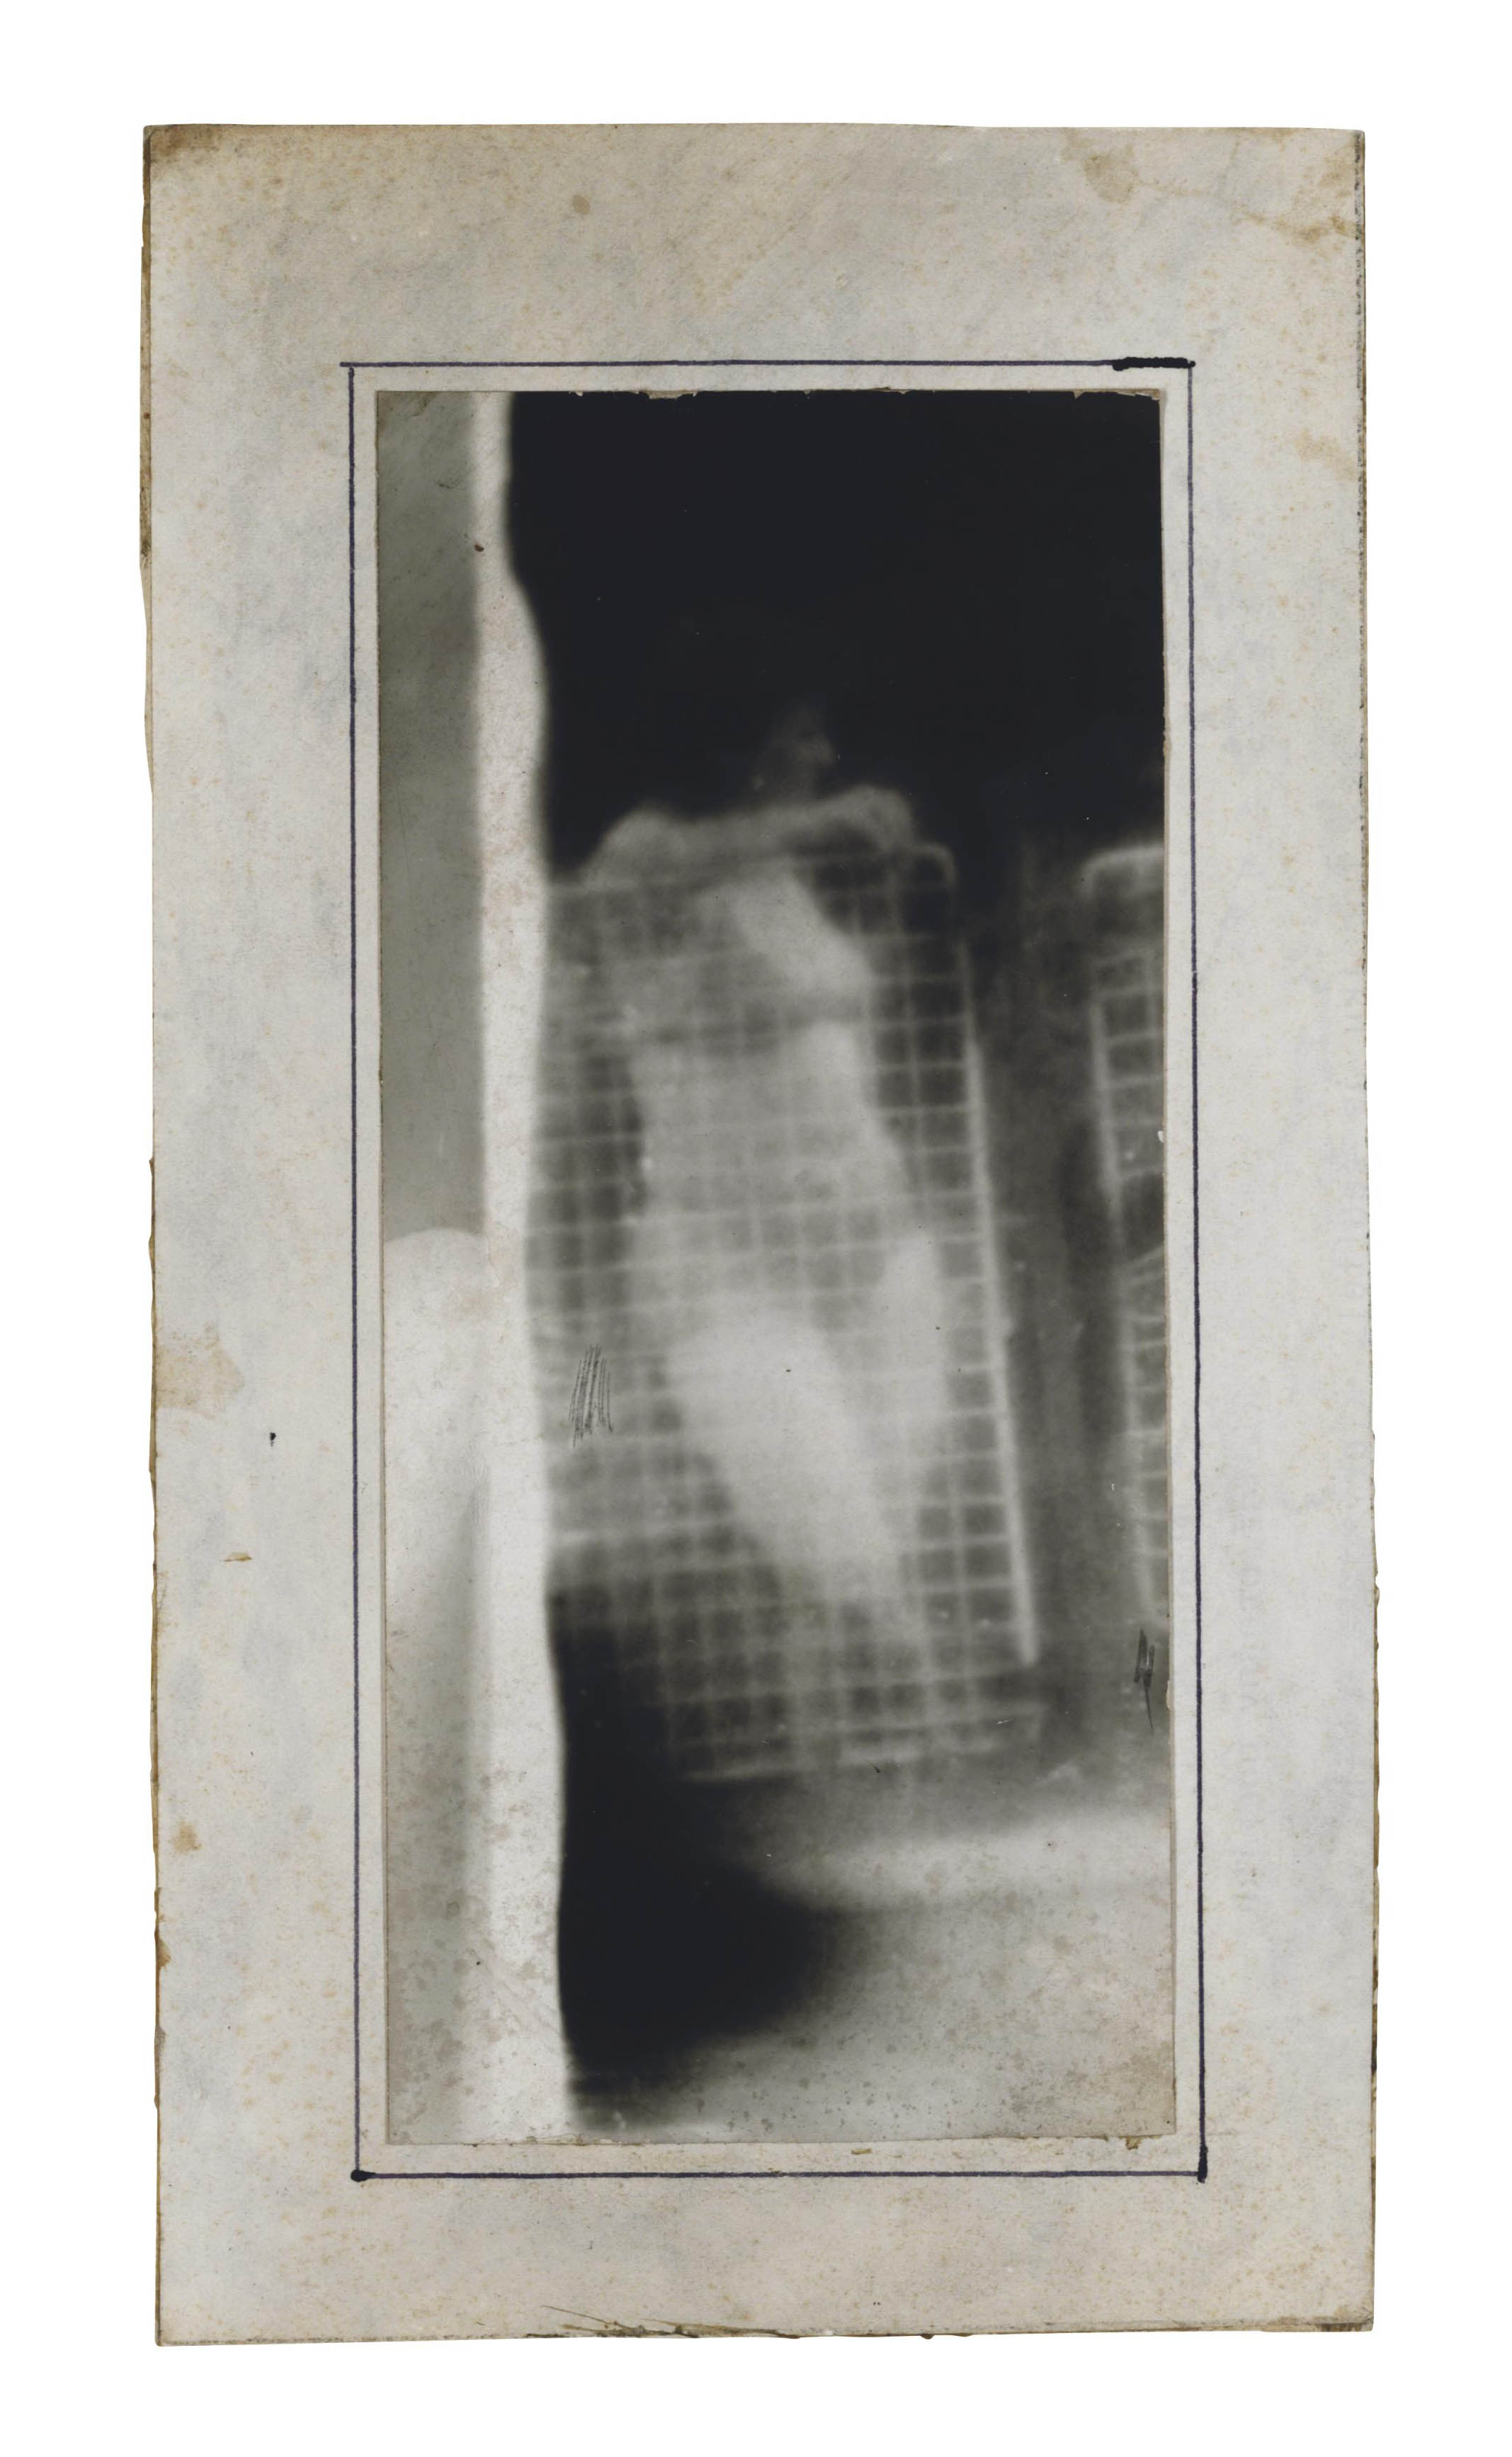 Untitled, 1950s-1980s